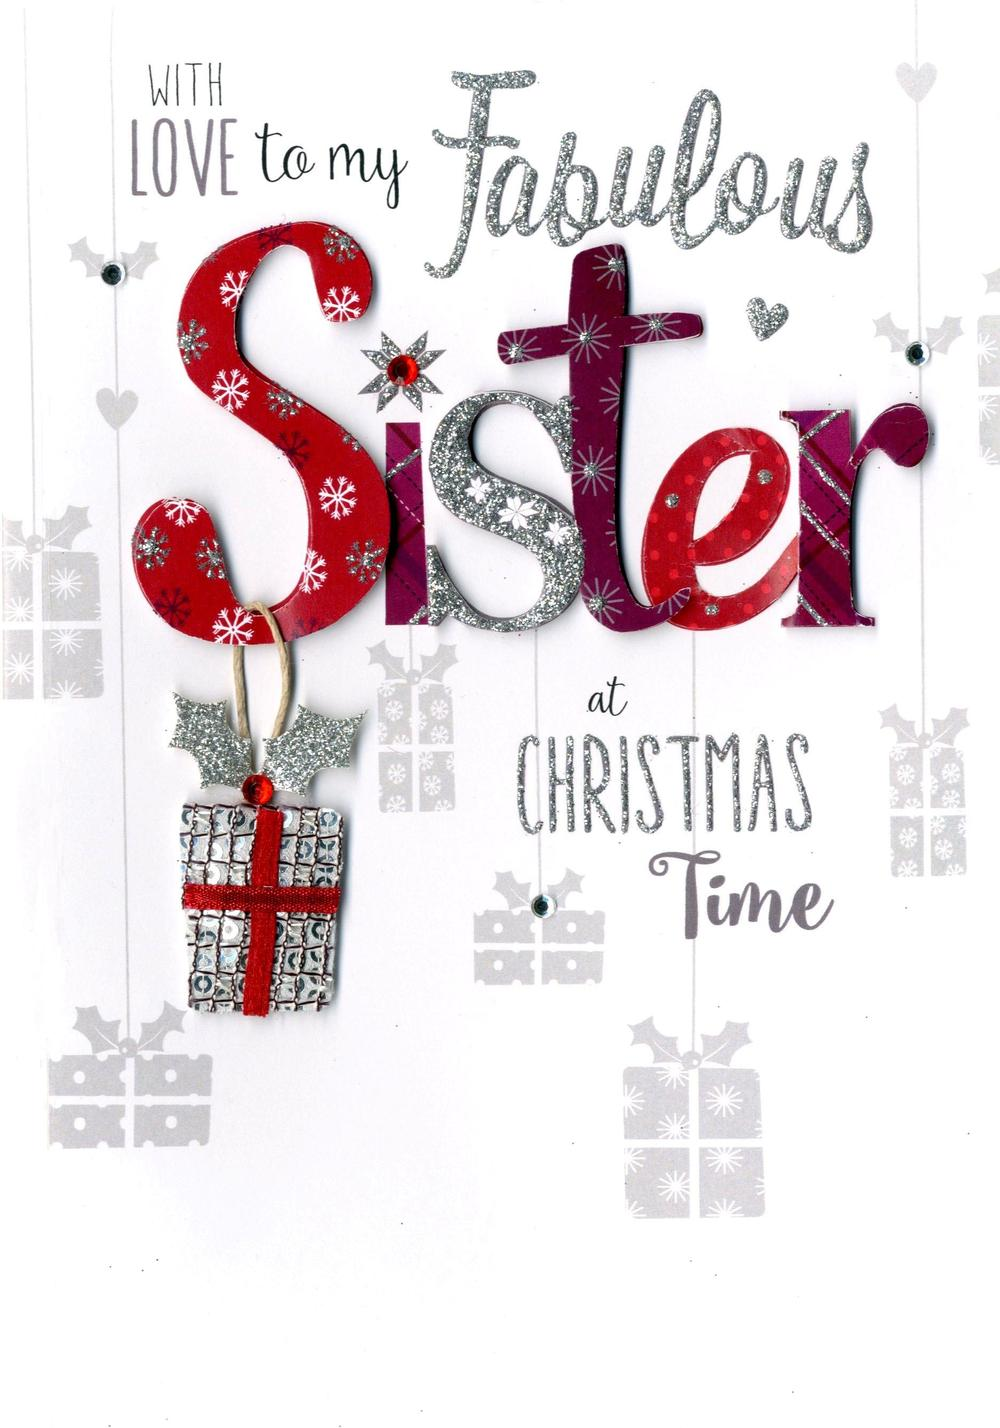 Fabulous Sister Embellished Christmas Card